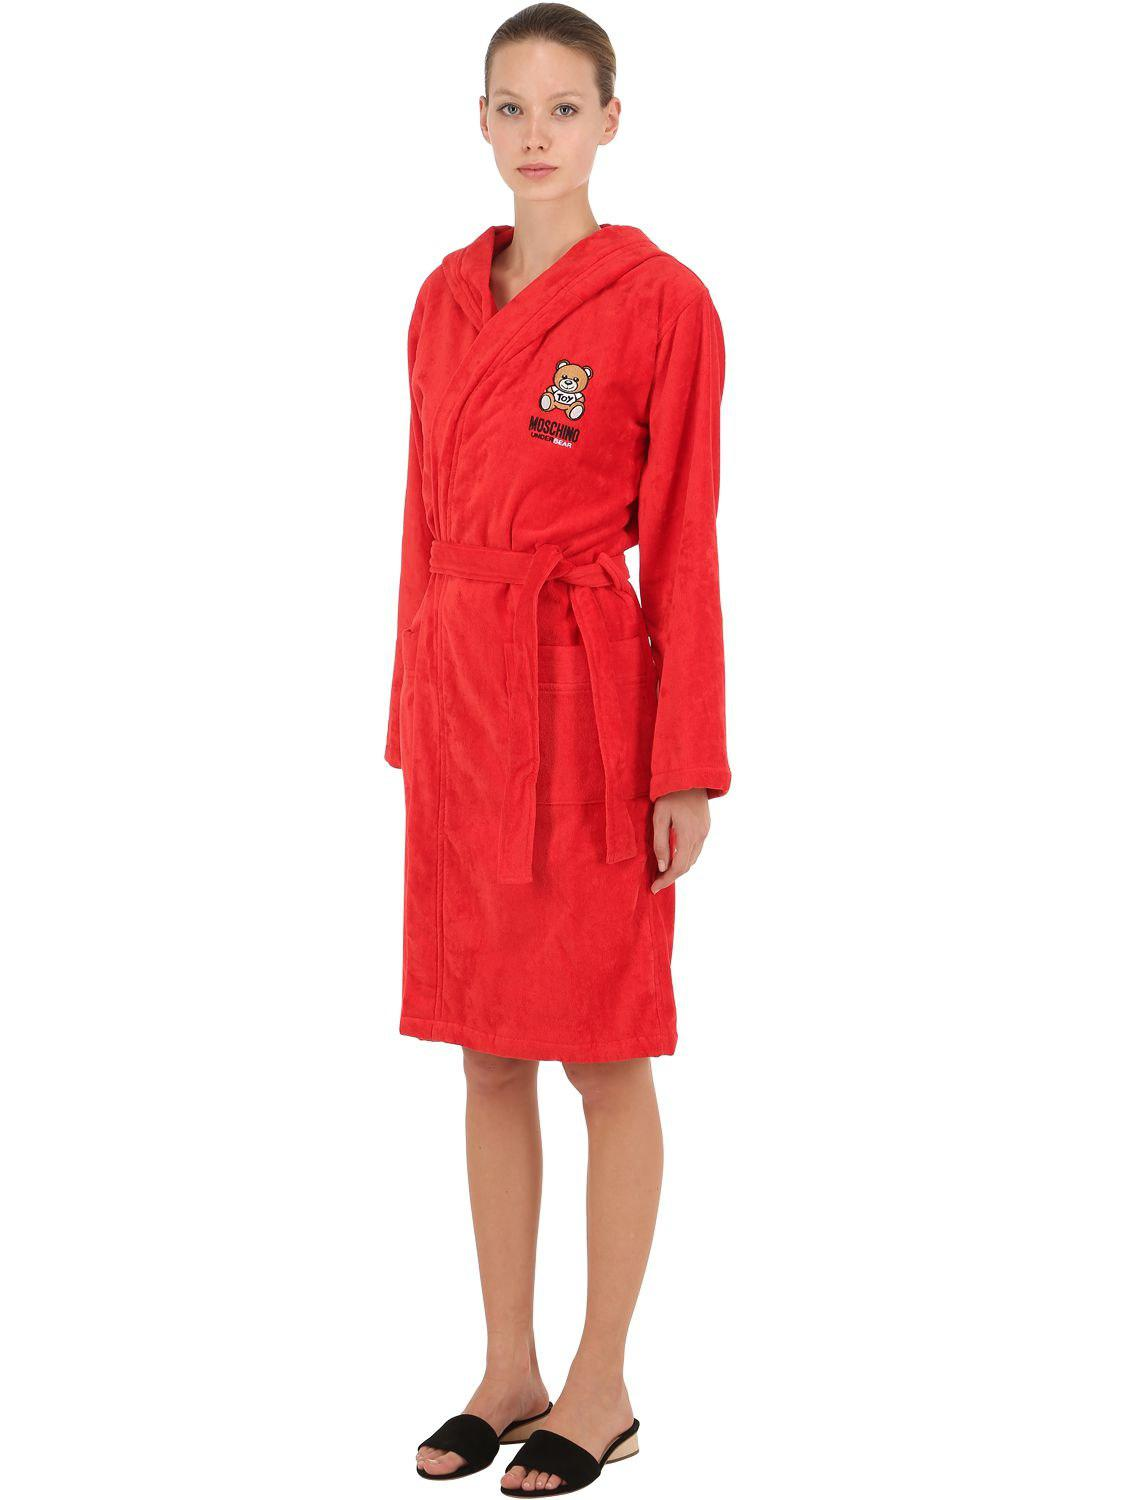 Moschino Underbear Cotton Bathrobe in Red - Lyst 6b6abfdf5